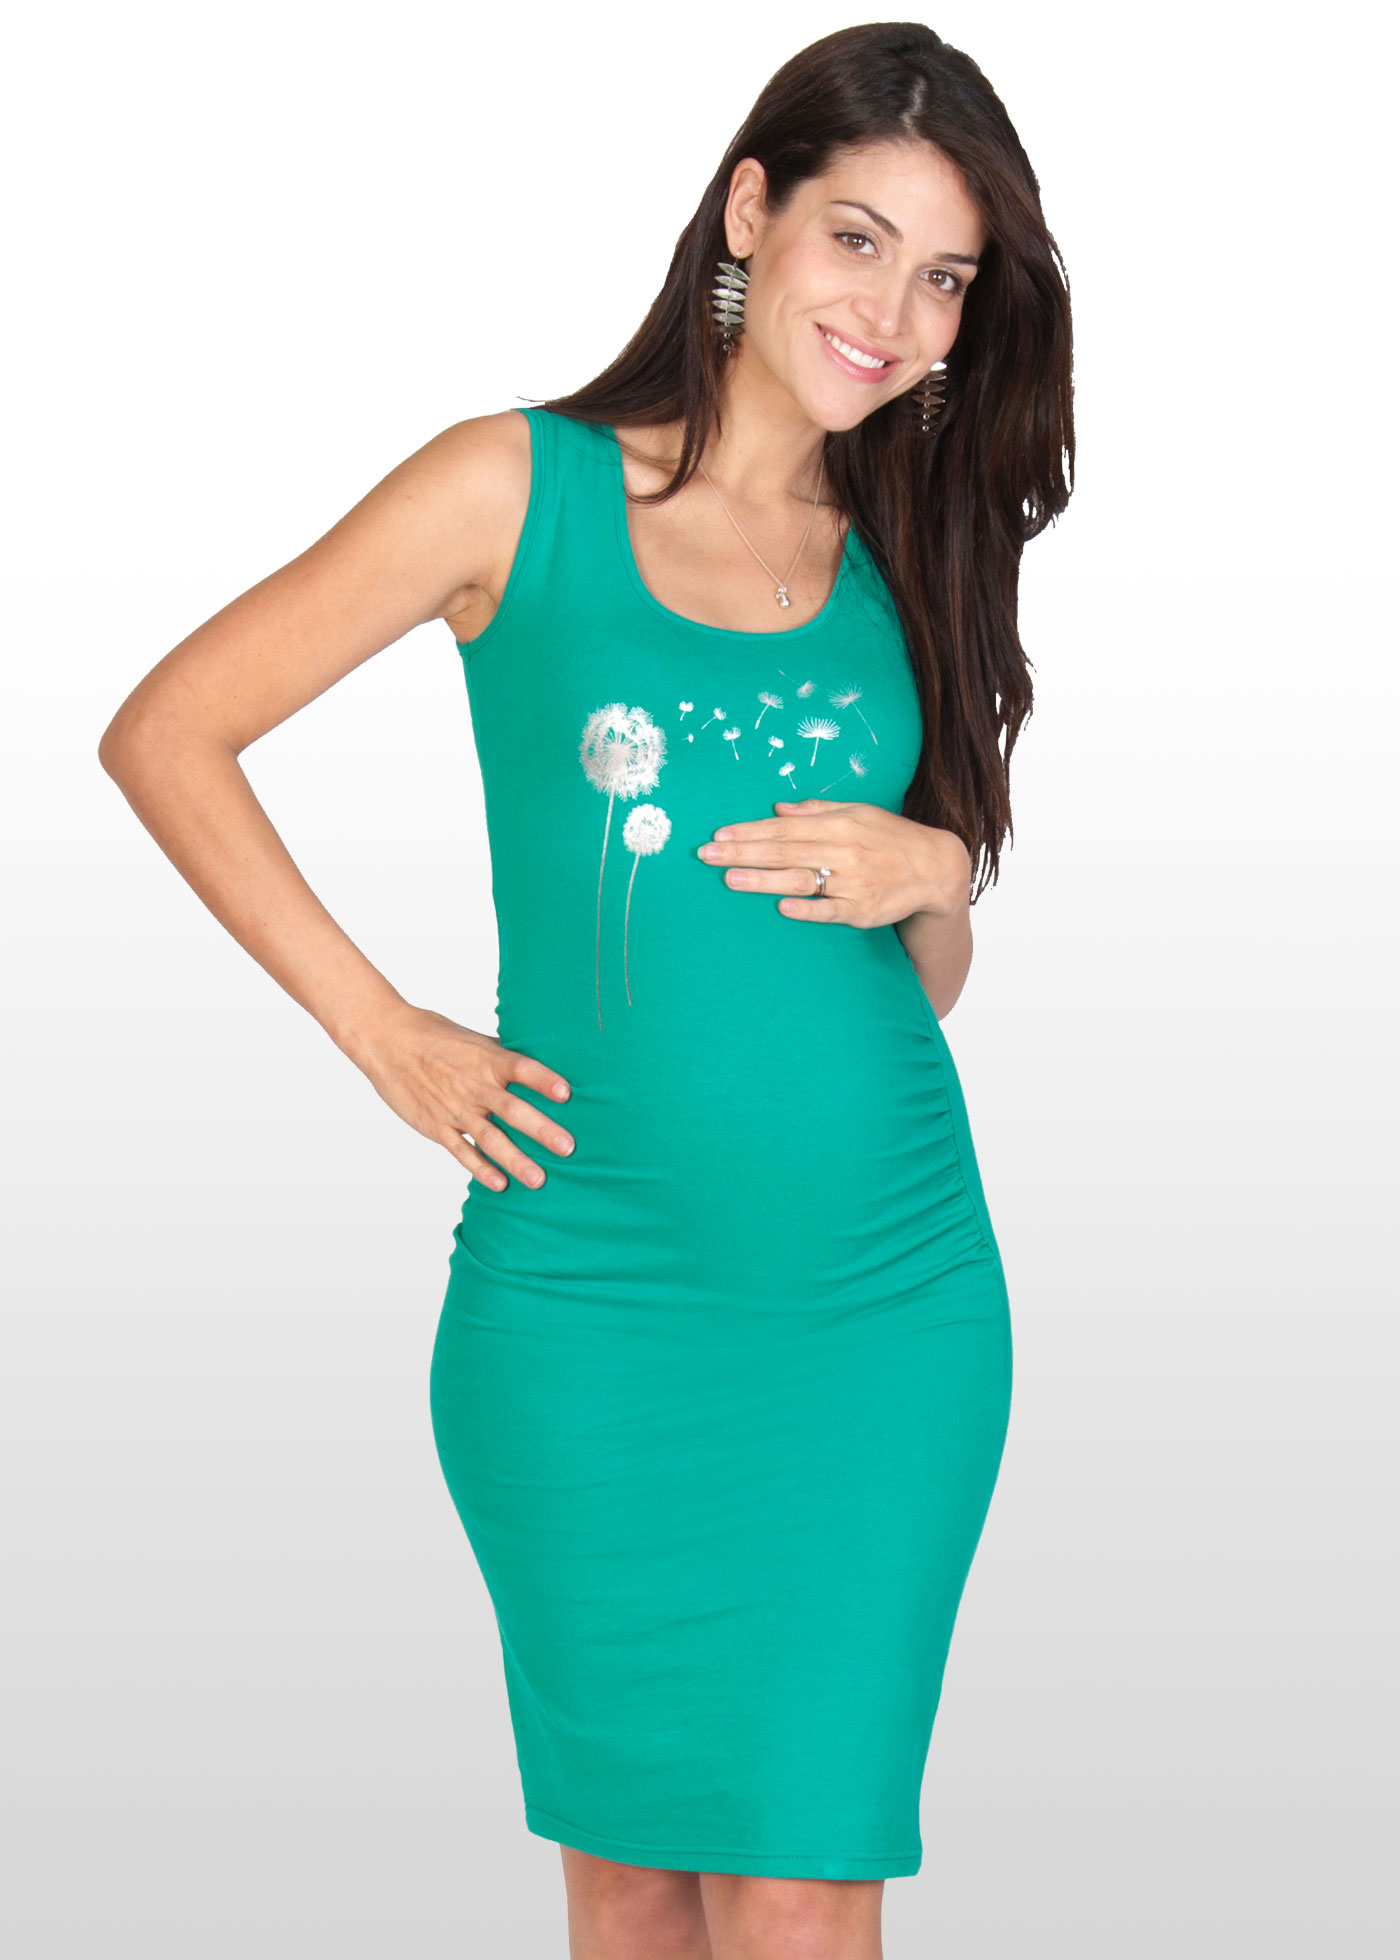 Australias spring summer maternity trends 2014 2015 the emerald print maternity dress ombrellifo Choice Image